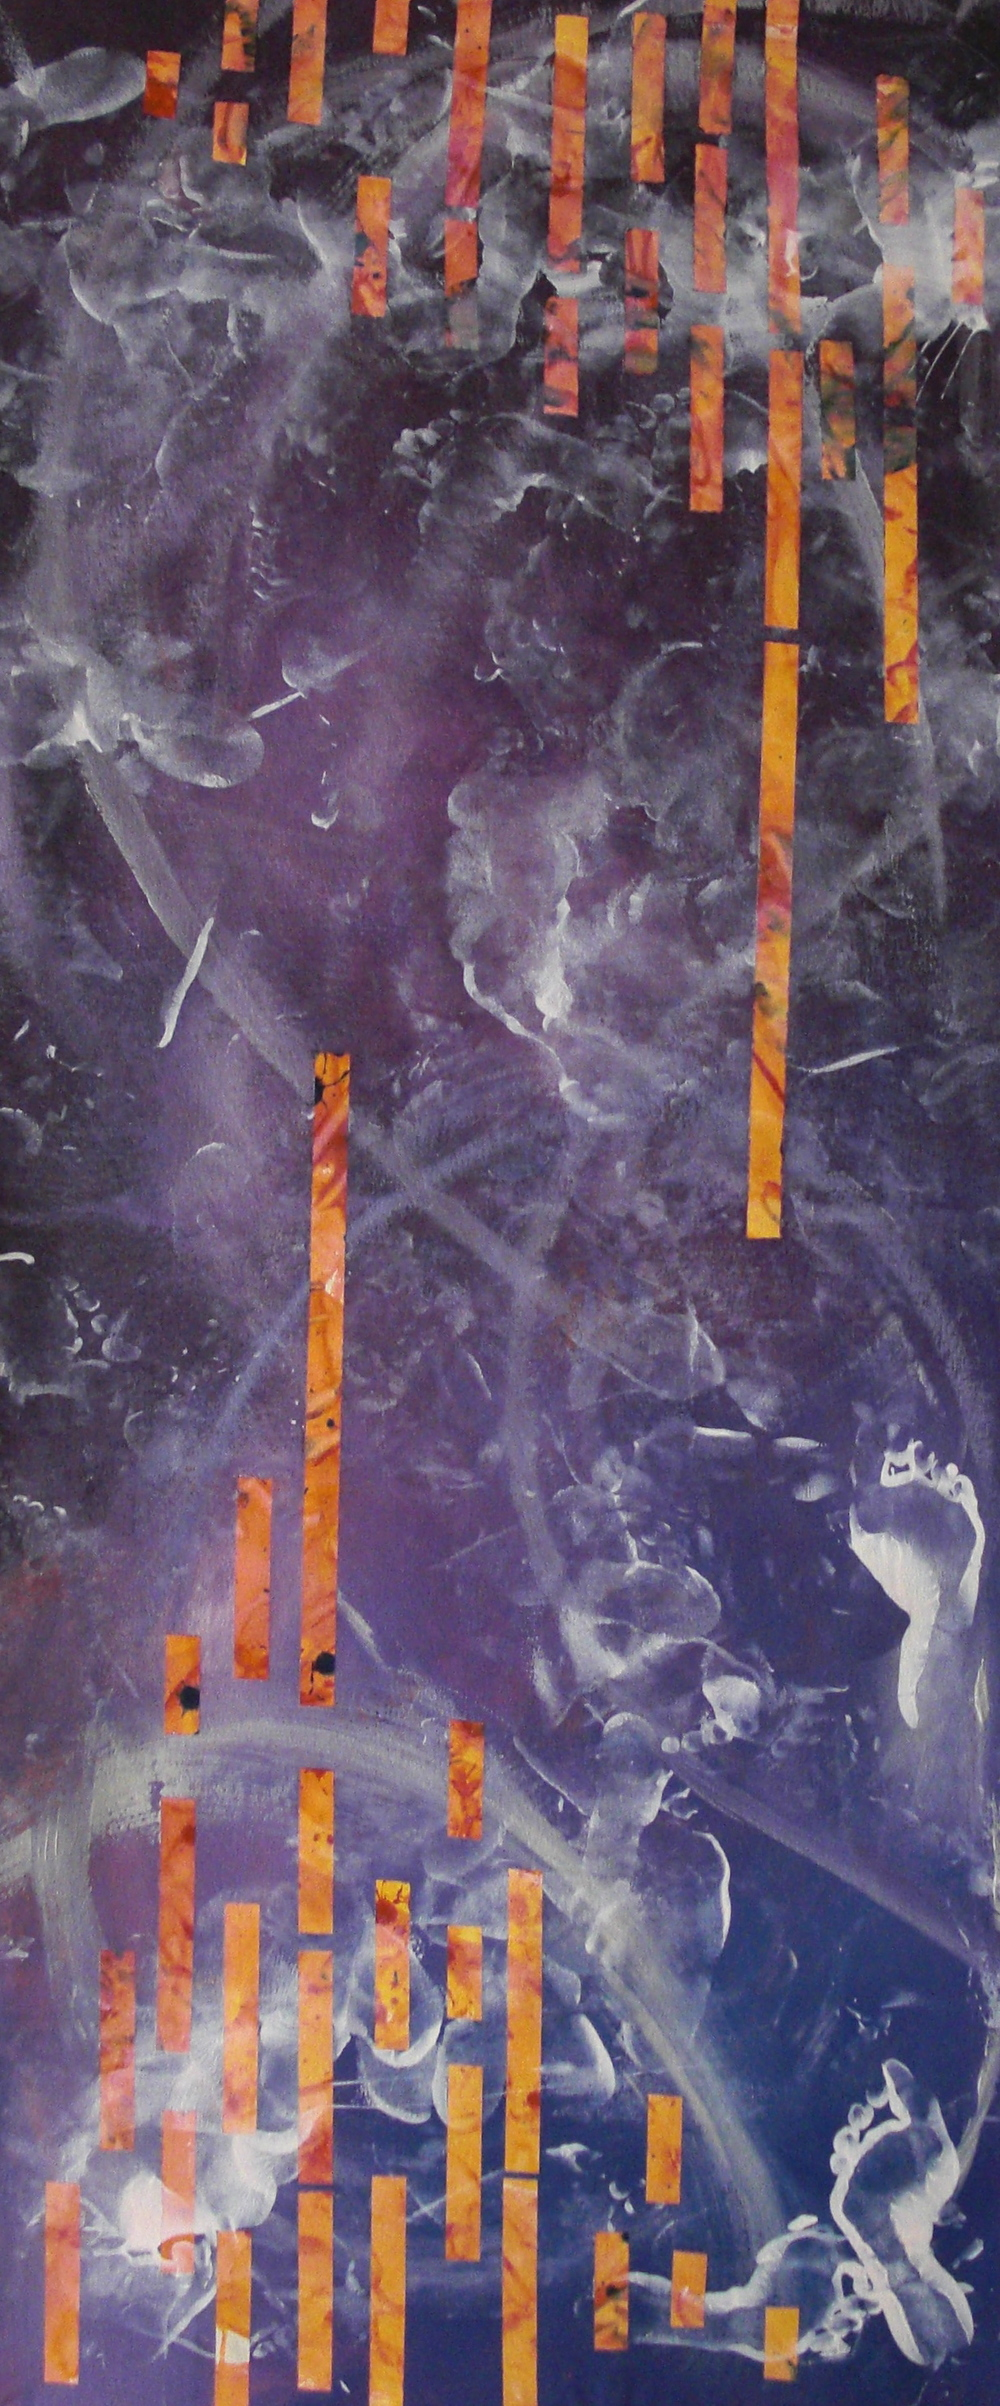 Dance #9, acrylic on canvas, 2'x6', 2010-2011